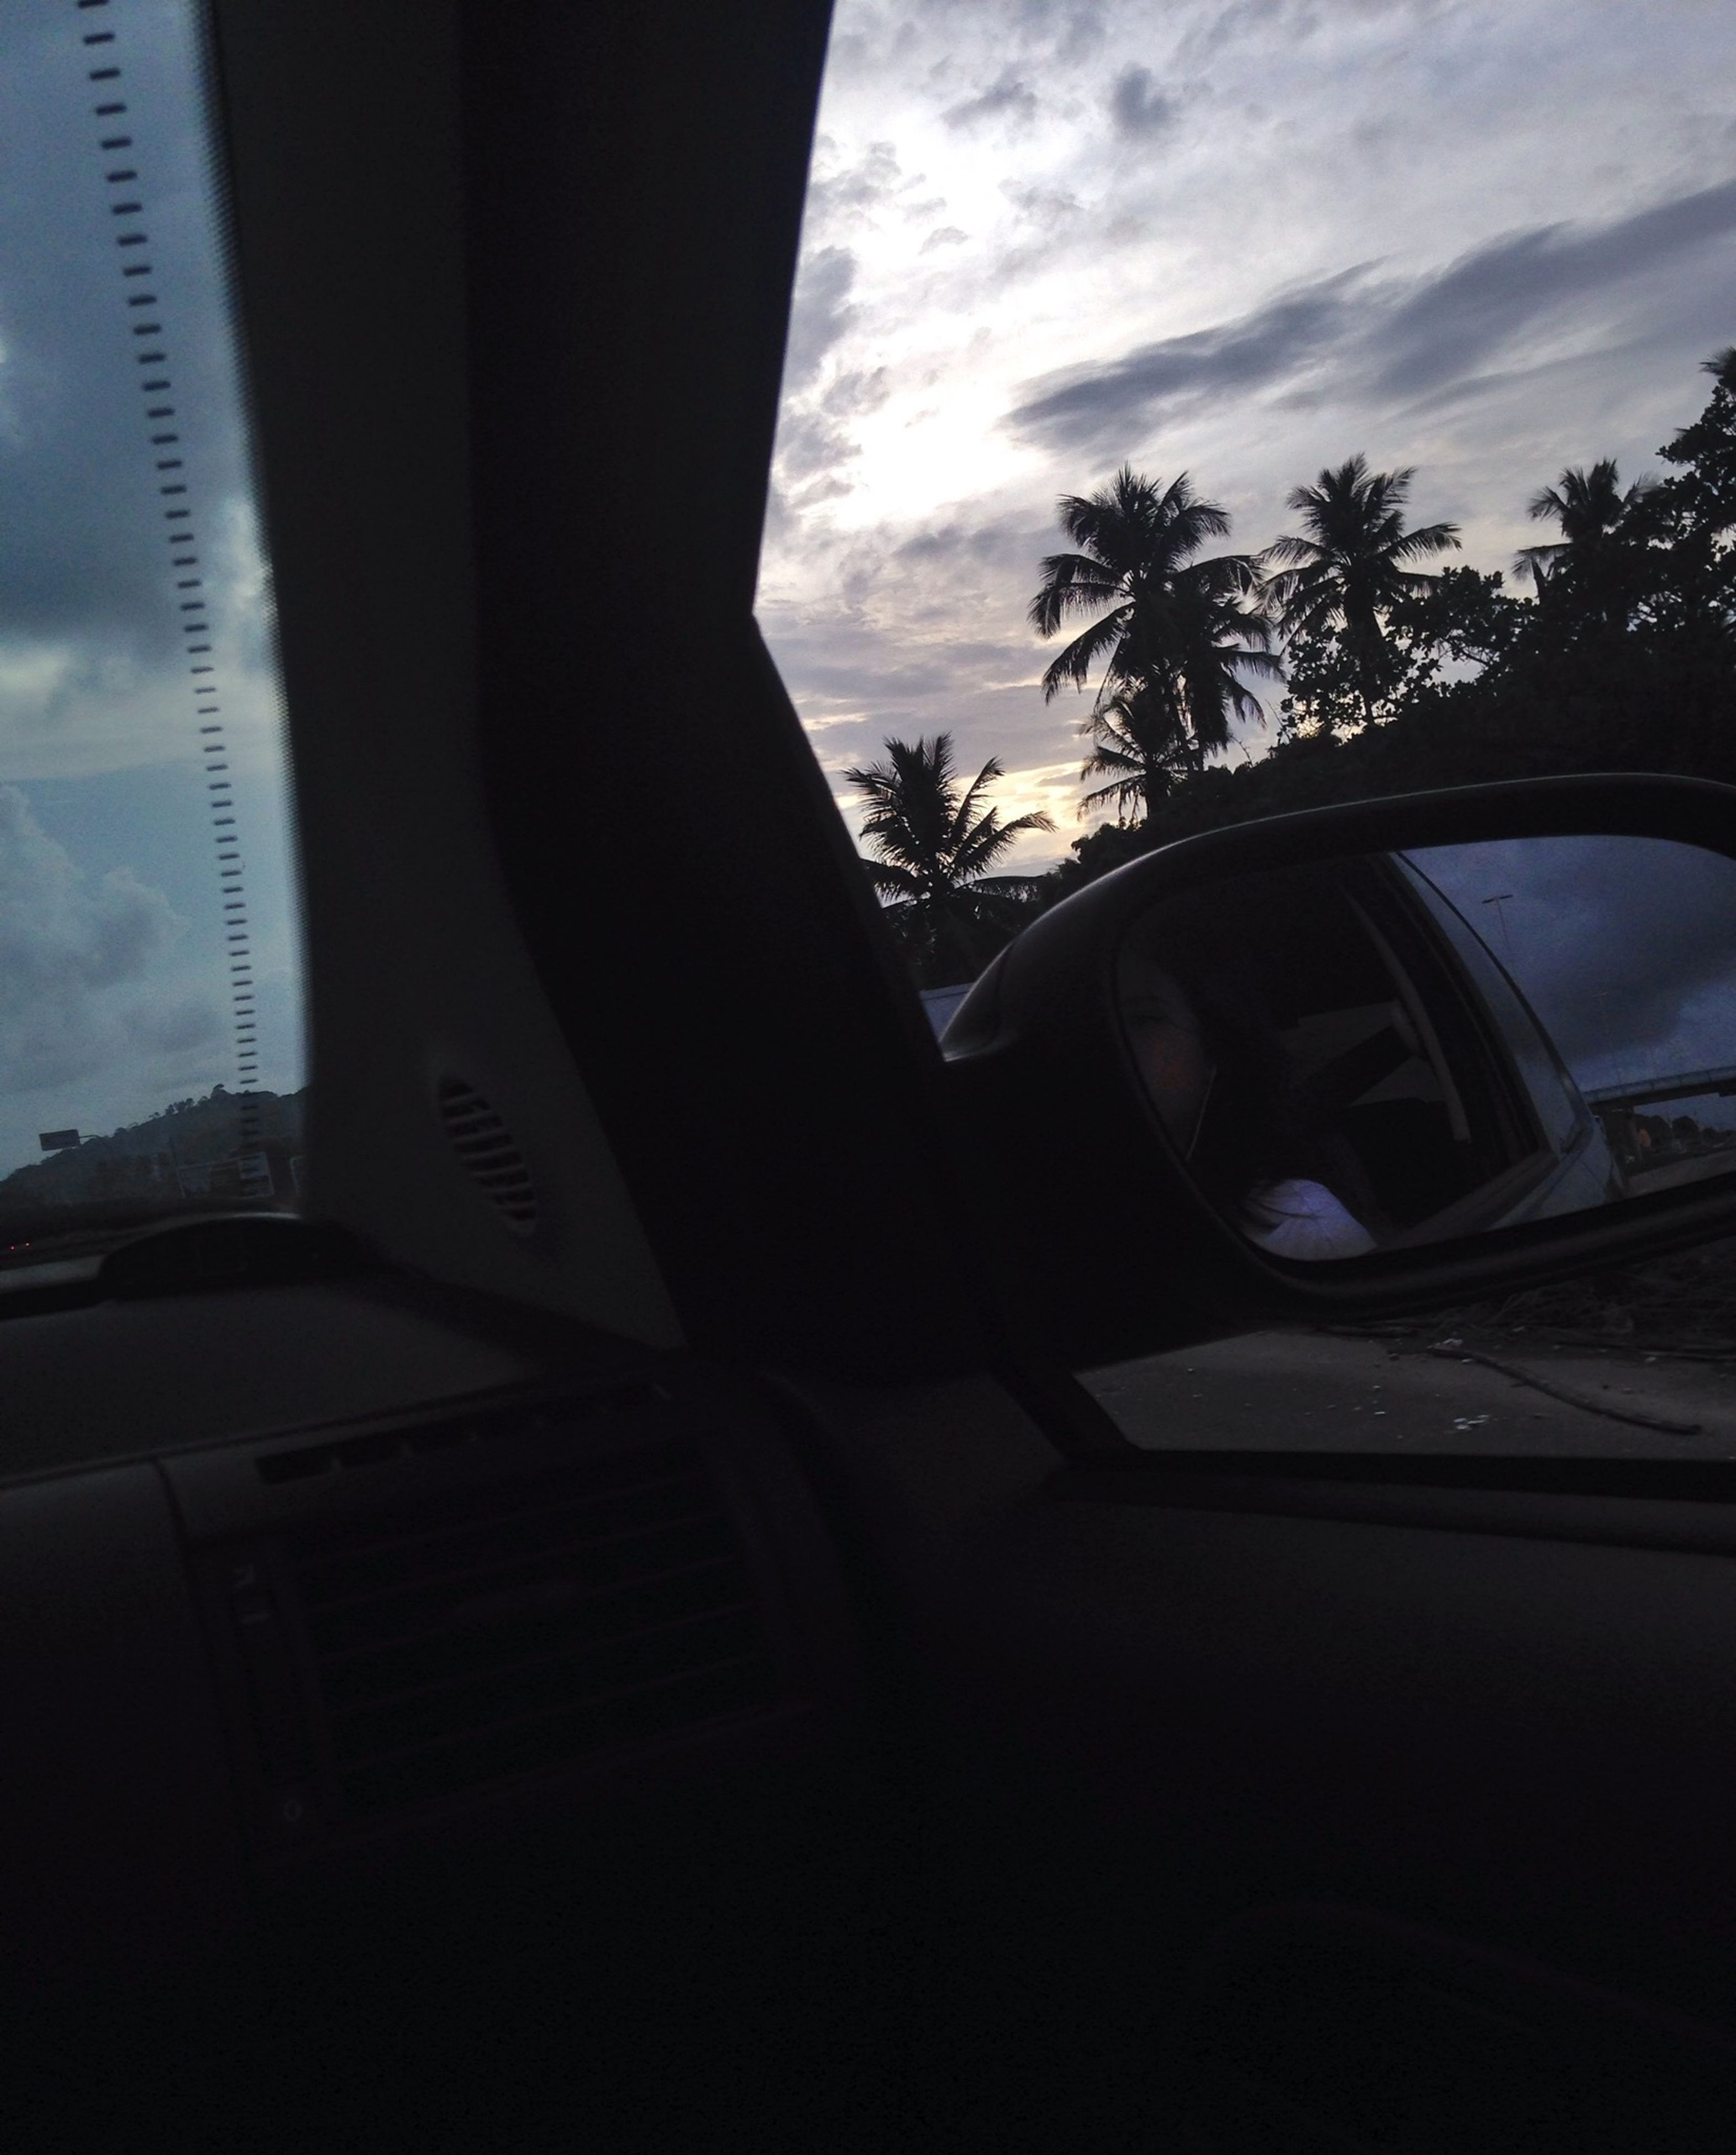 transportation, sky, mode of transport, car, land vehicle, cloud - sky, architecture, built structure, tree, building exterior, glass - material, window, cloud, low angle view, silhouette, vehicle interior, transparent, road, city, travel